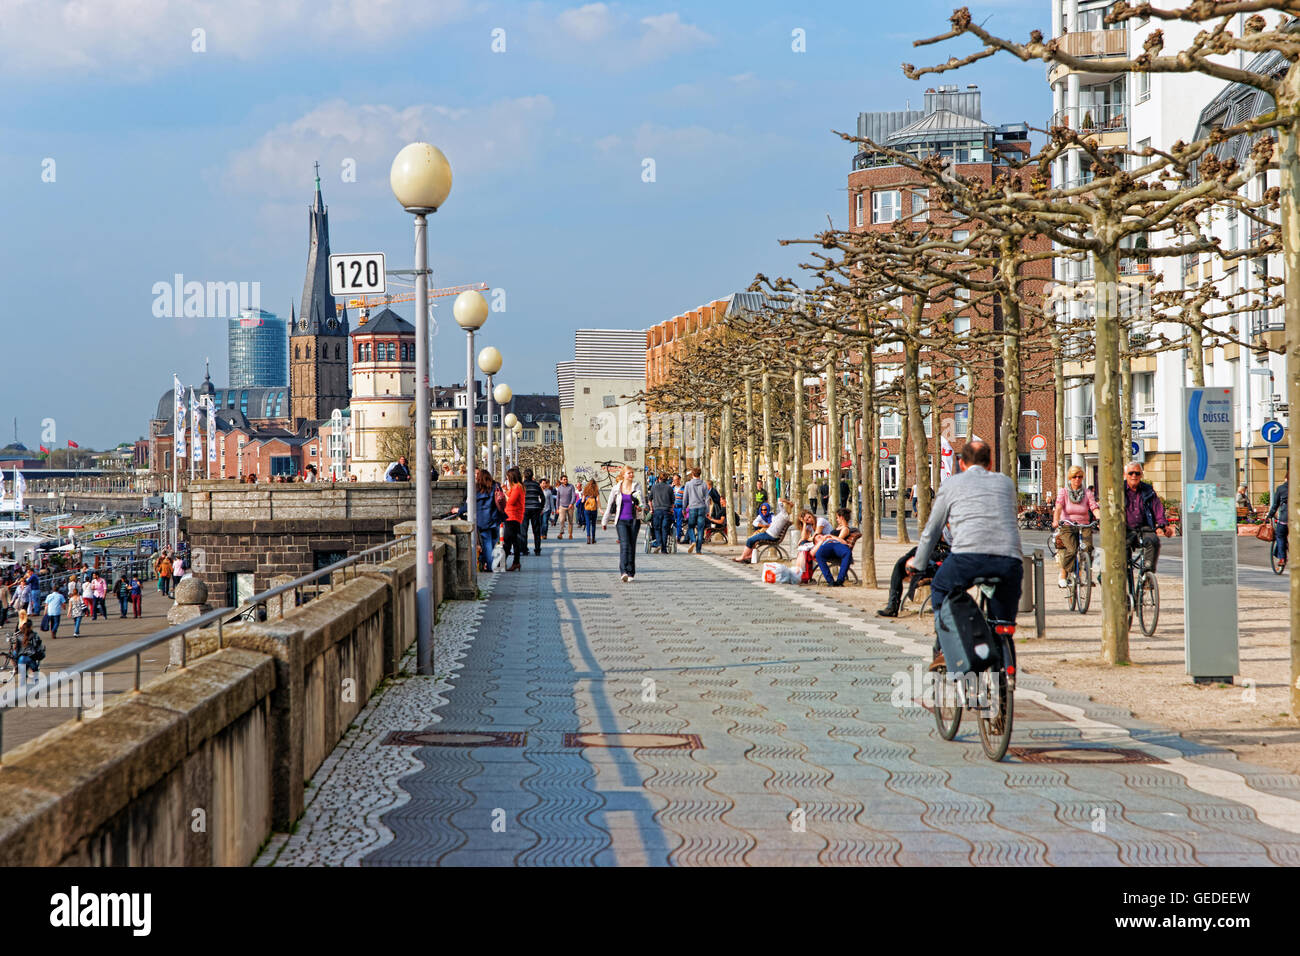 Dusseldorf, Germany - May 3, 2013: Rhine embankment promenade in the Old city center of Dusseldorf in Germany. Tourists nearby. It is the capital of Rhine Westphalia region. Stock Photo